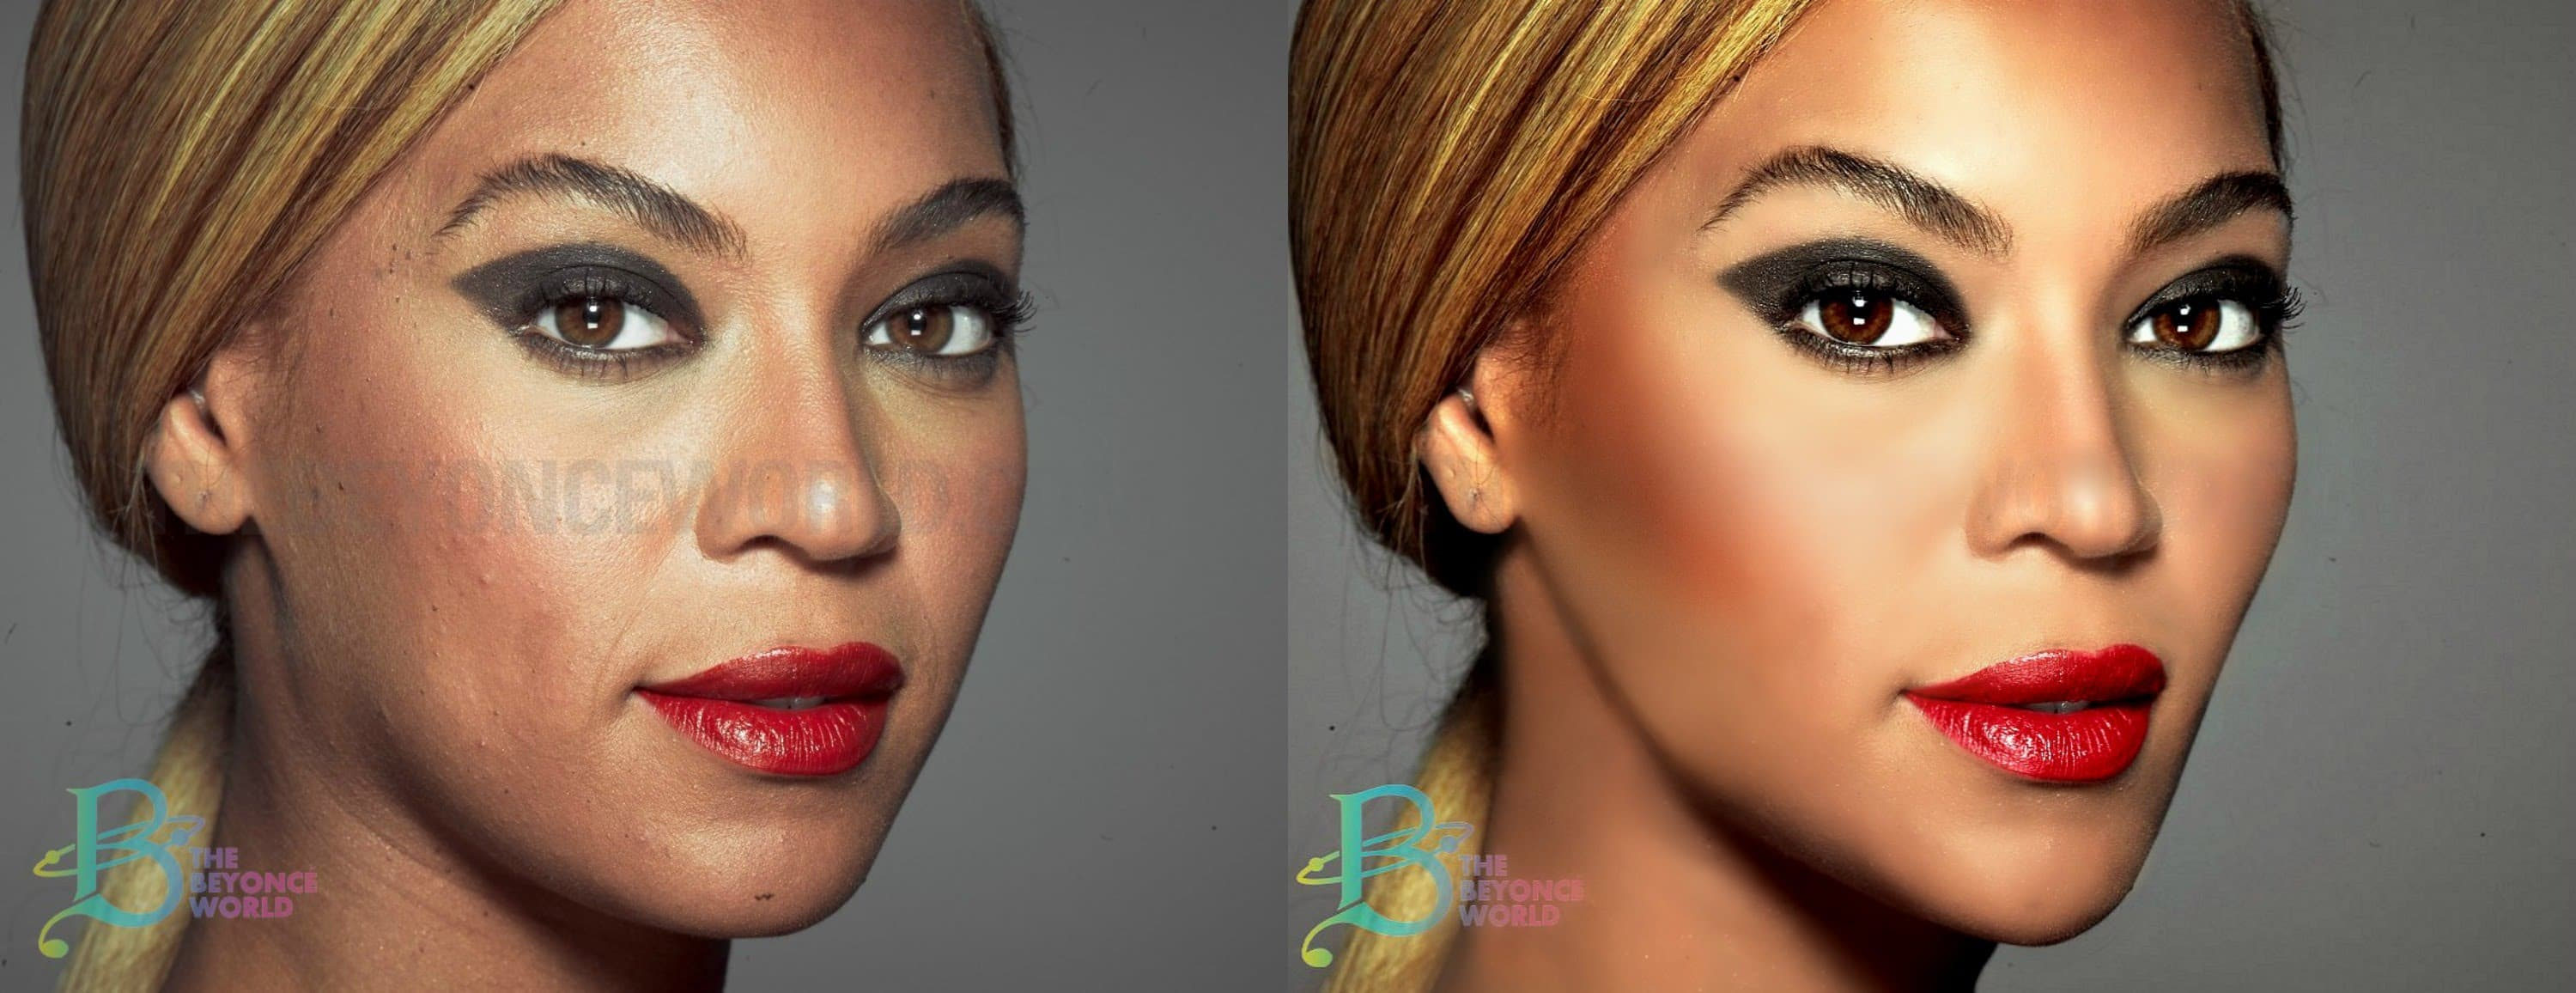 Models Plastic Surgery Before And After 1